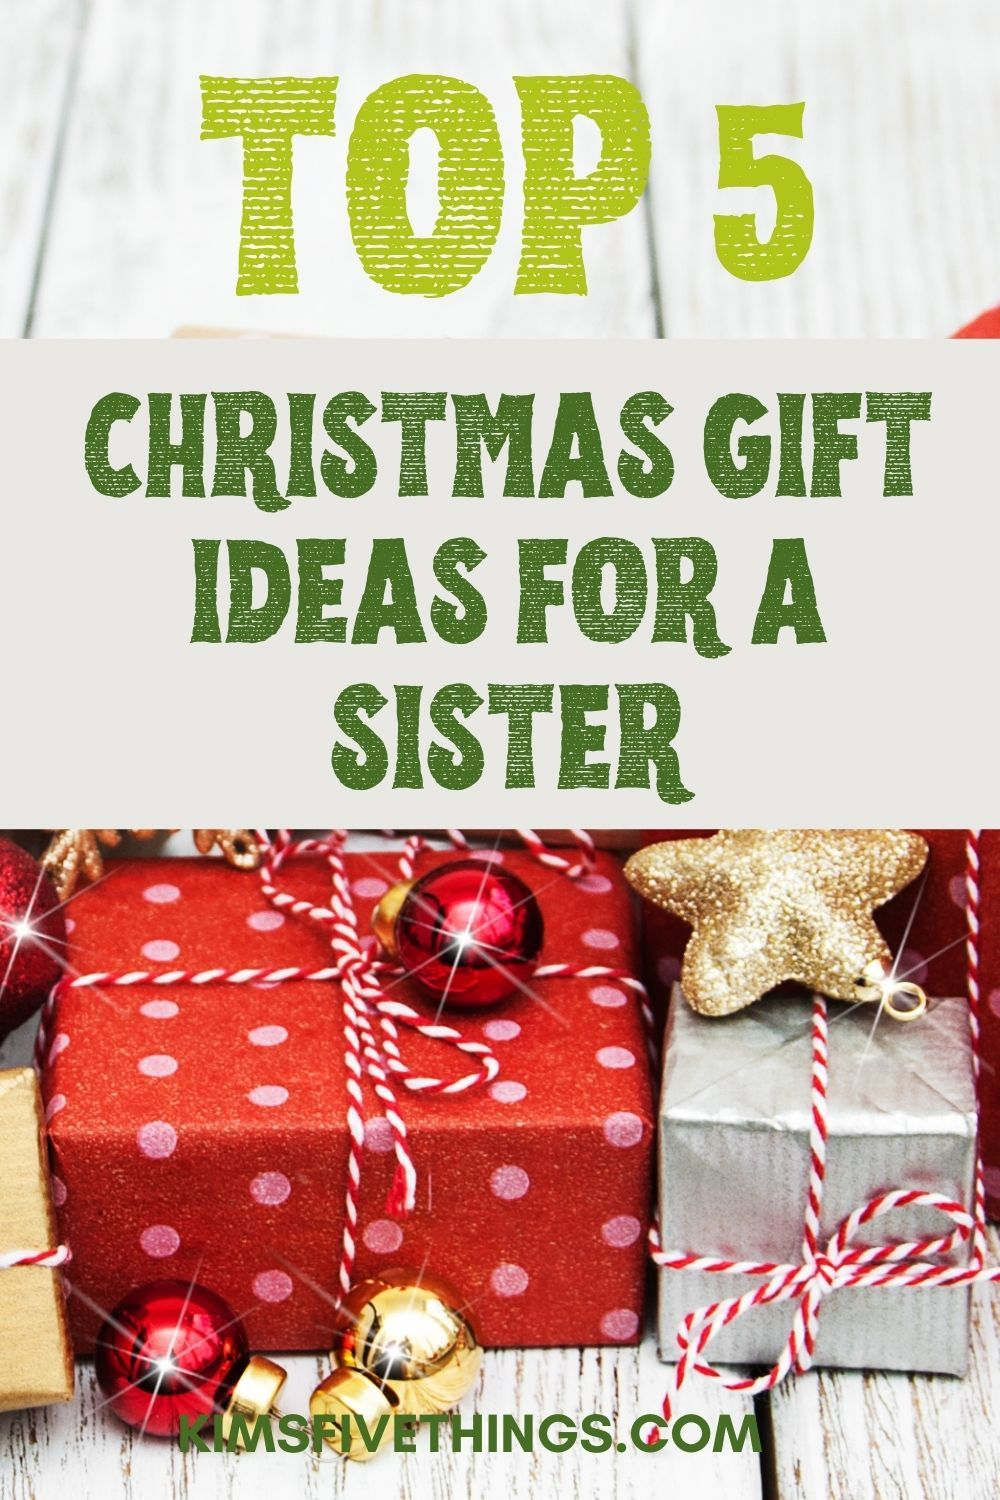 Best Christmas Gifts 2020 Sister Top 5 Best Christmas Gifts for Your Sister   Kims Home Ideas in